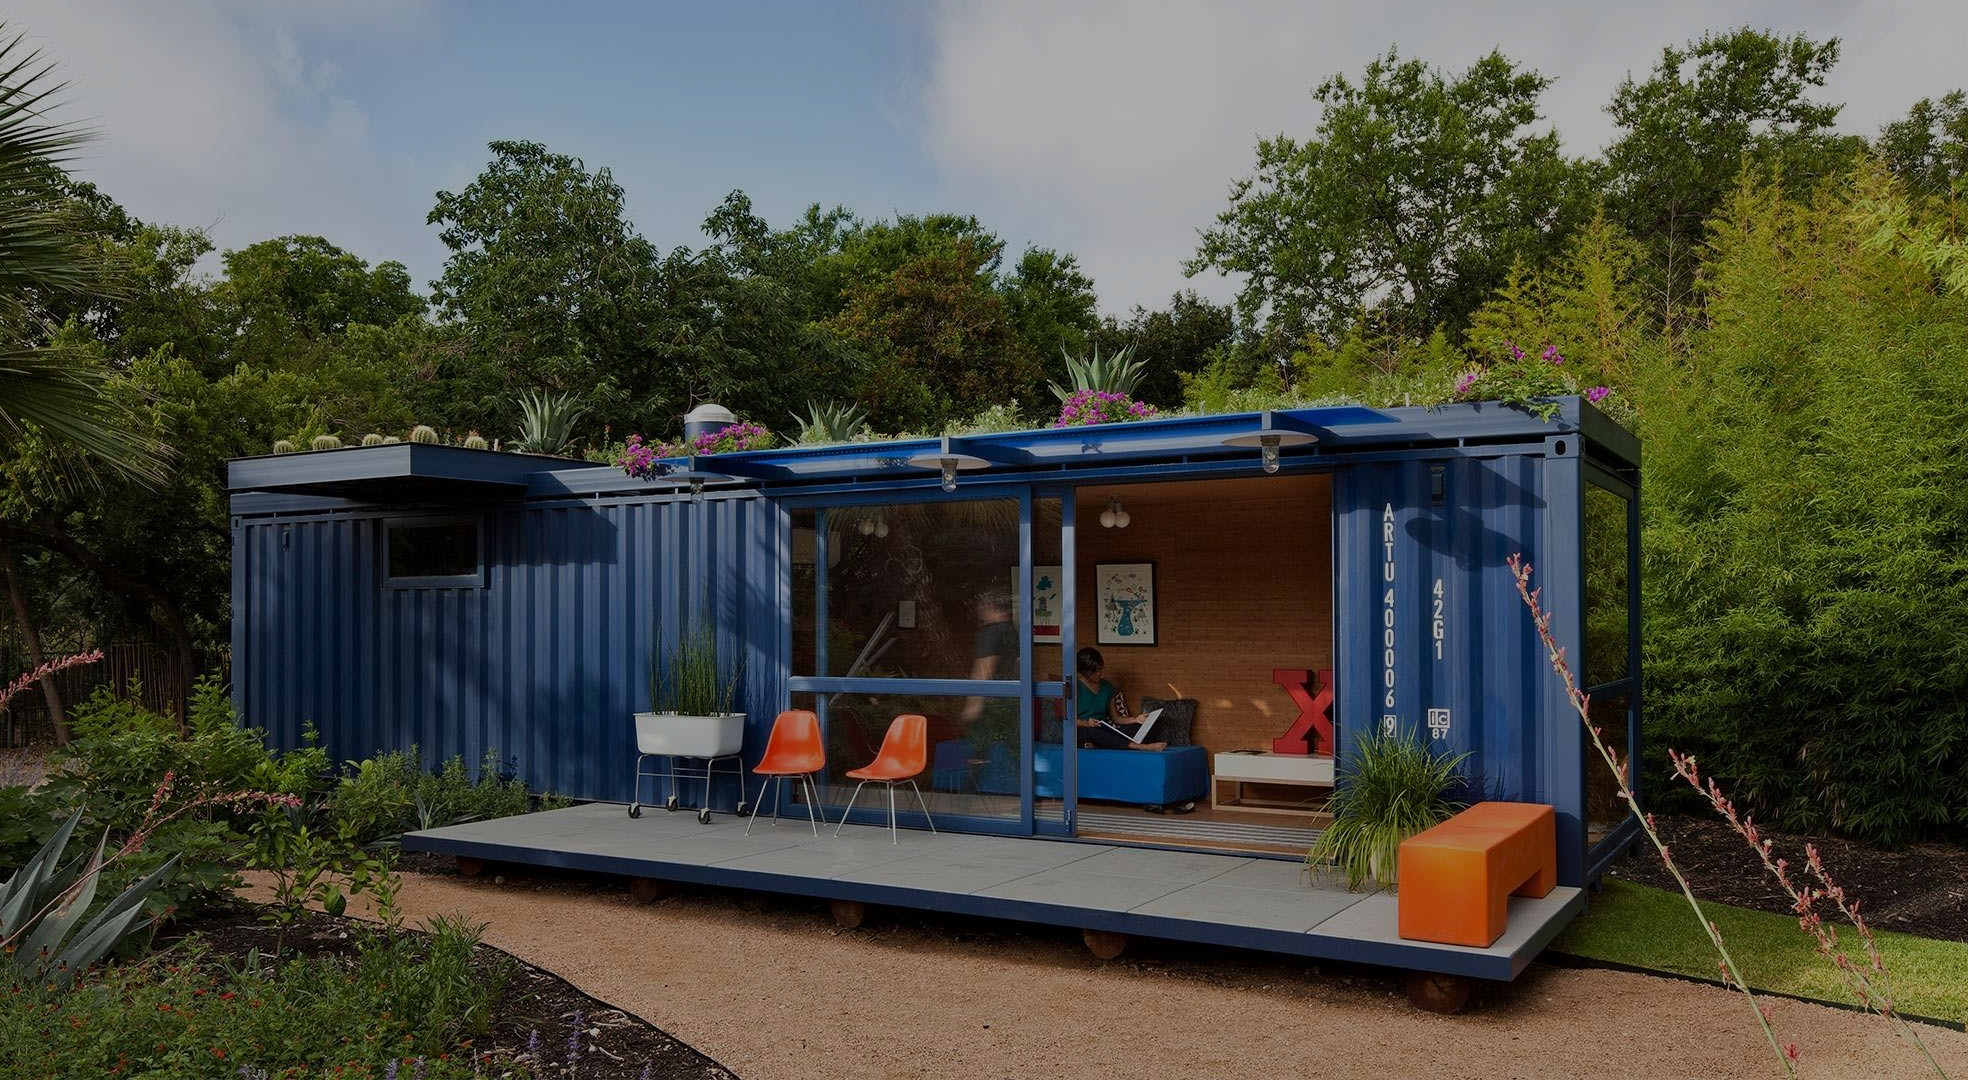 Container homes gives you a alternative to the traditional way of building a home, moving away from brick and mortar. With modern and stylish finishes your new Container home can be Eco-friendly, stand out from the rest and can also be off the grid.